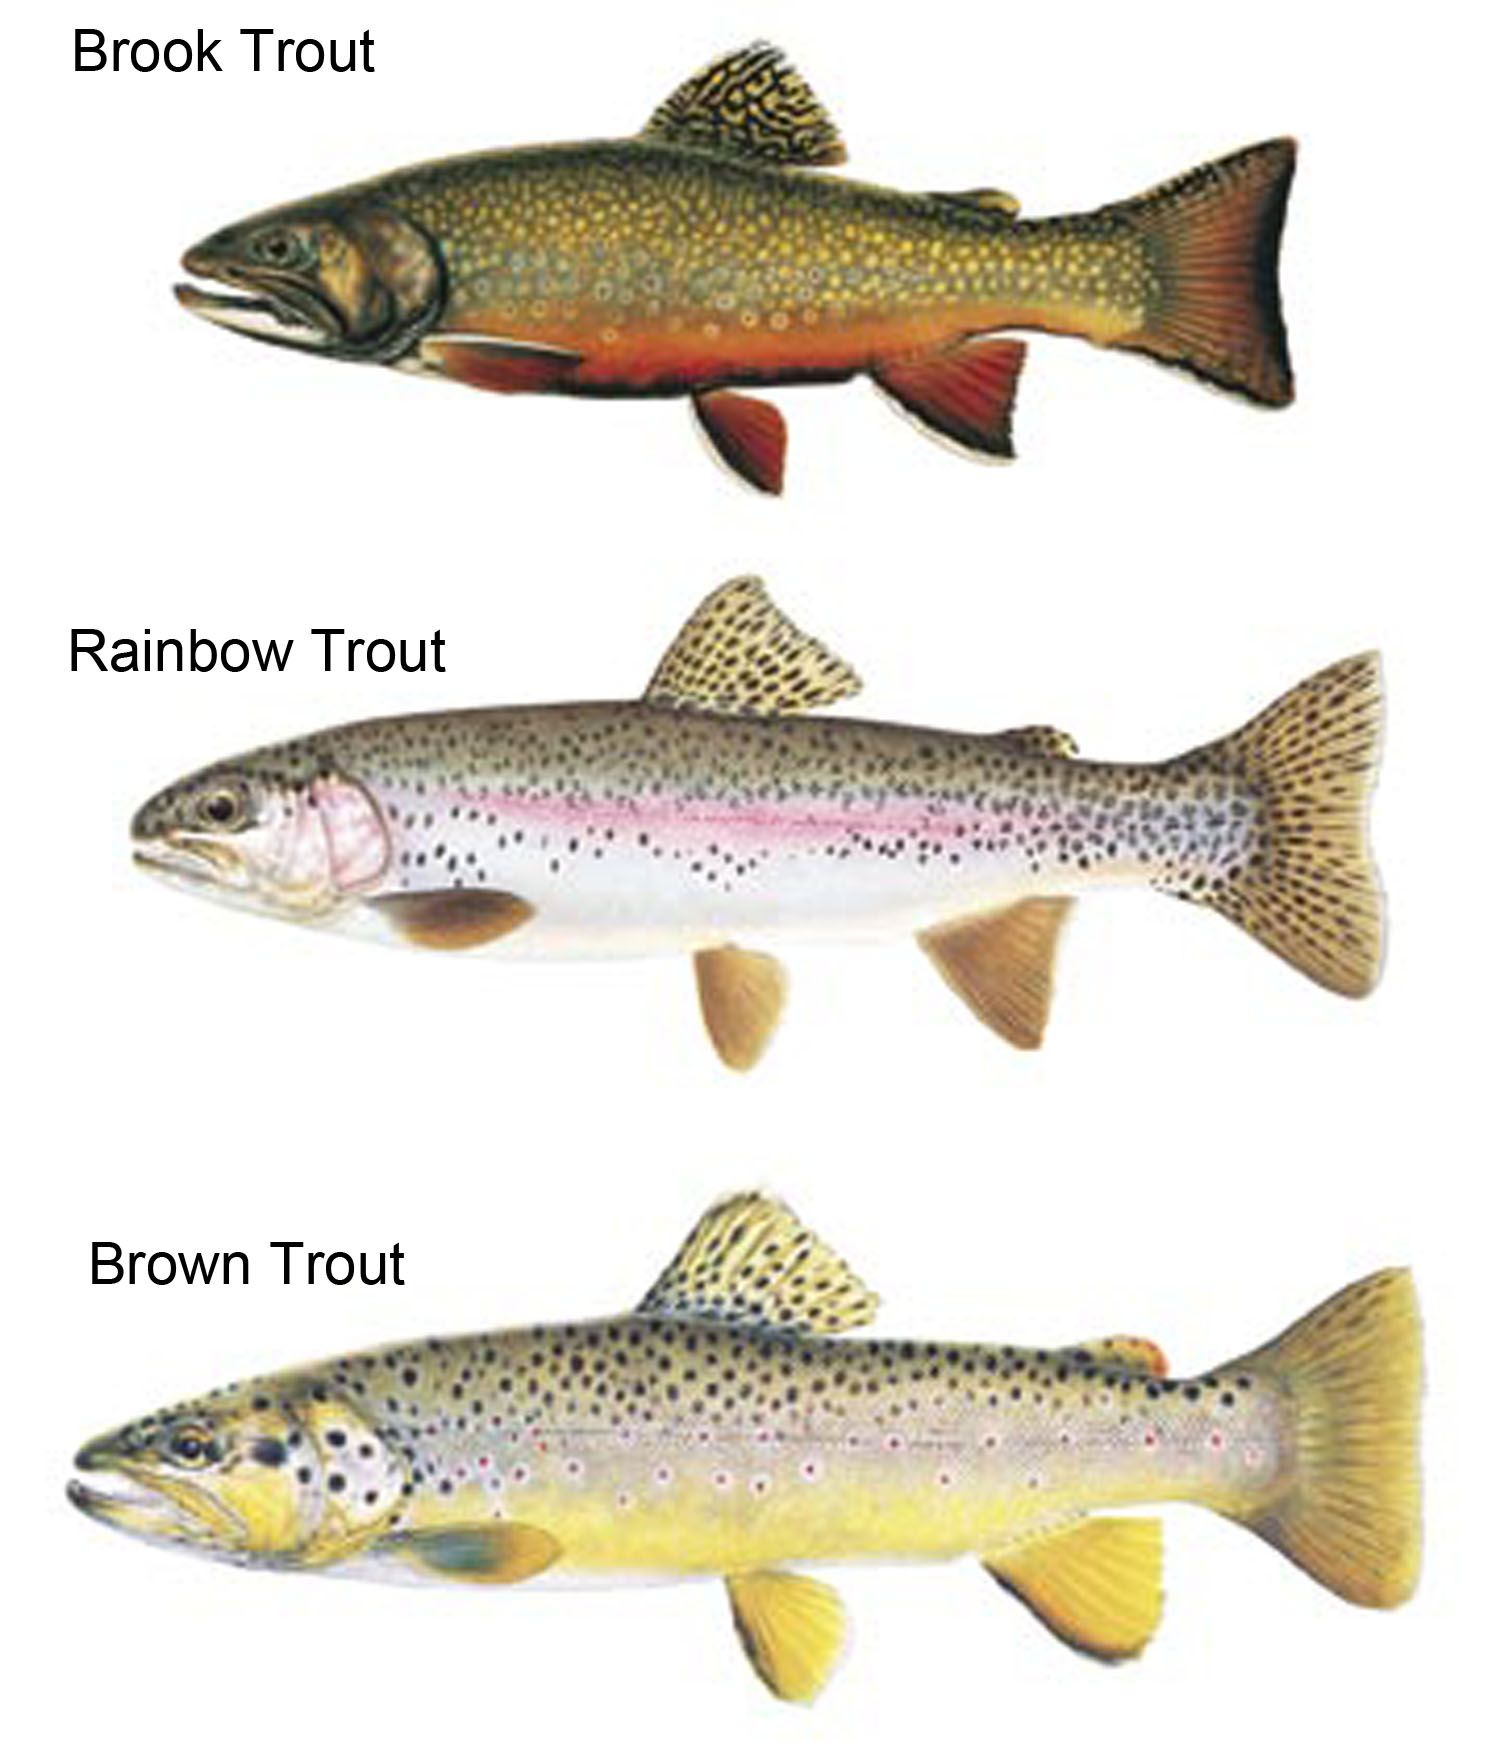 Impacts of Land Use Change on Trout Streams | Trout Stream Research ...